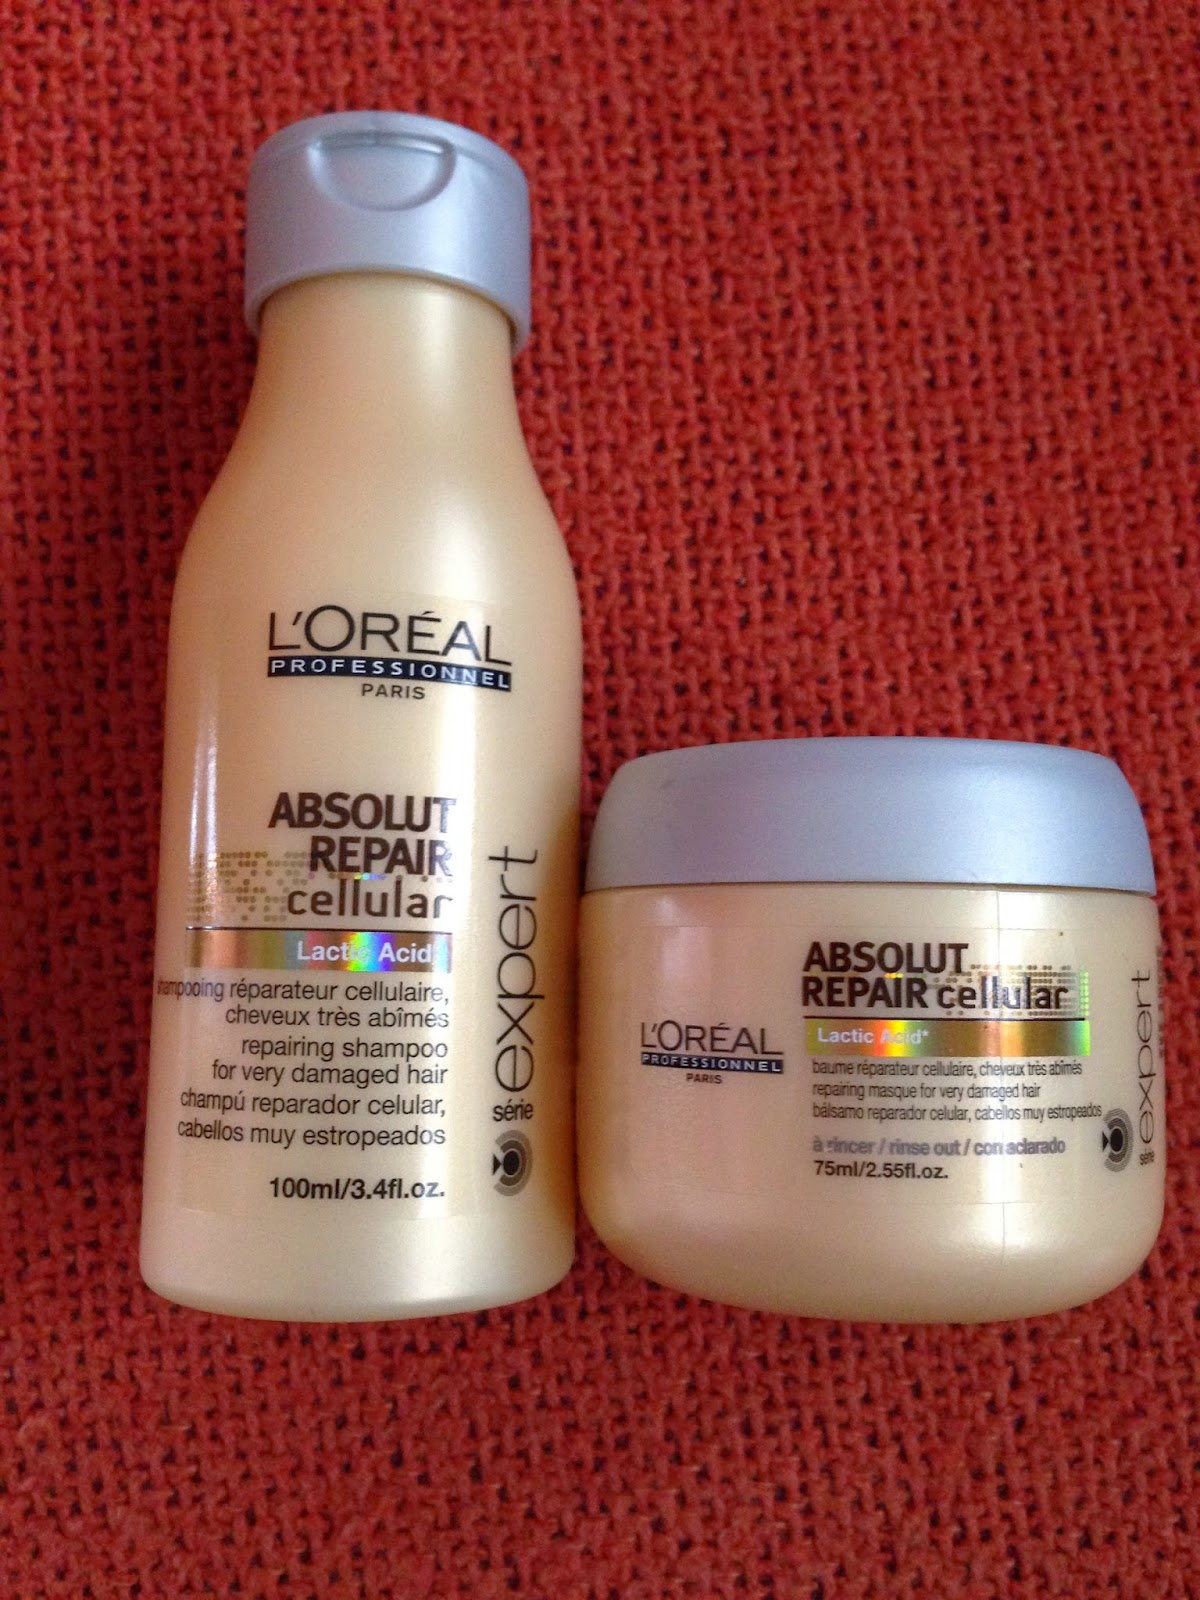 L'Oreal Expert Absolute Repair Cellular Masque